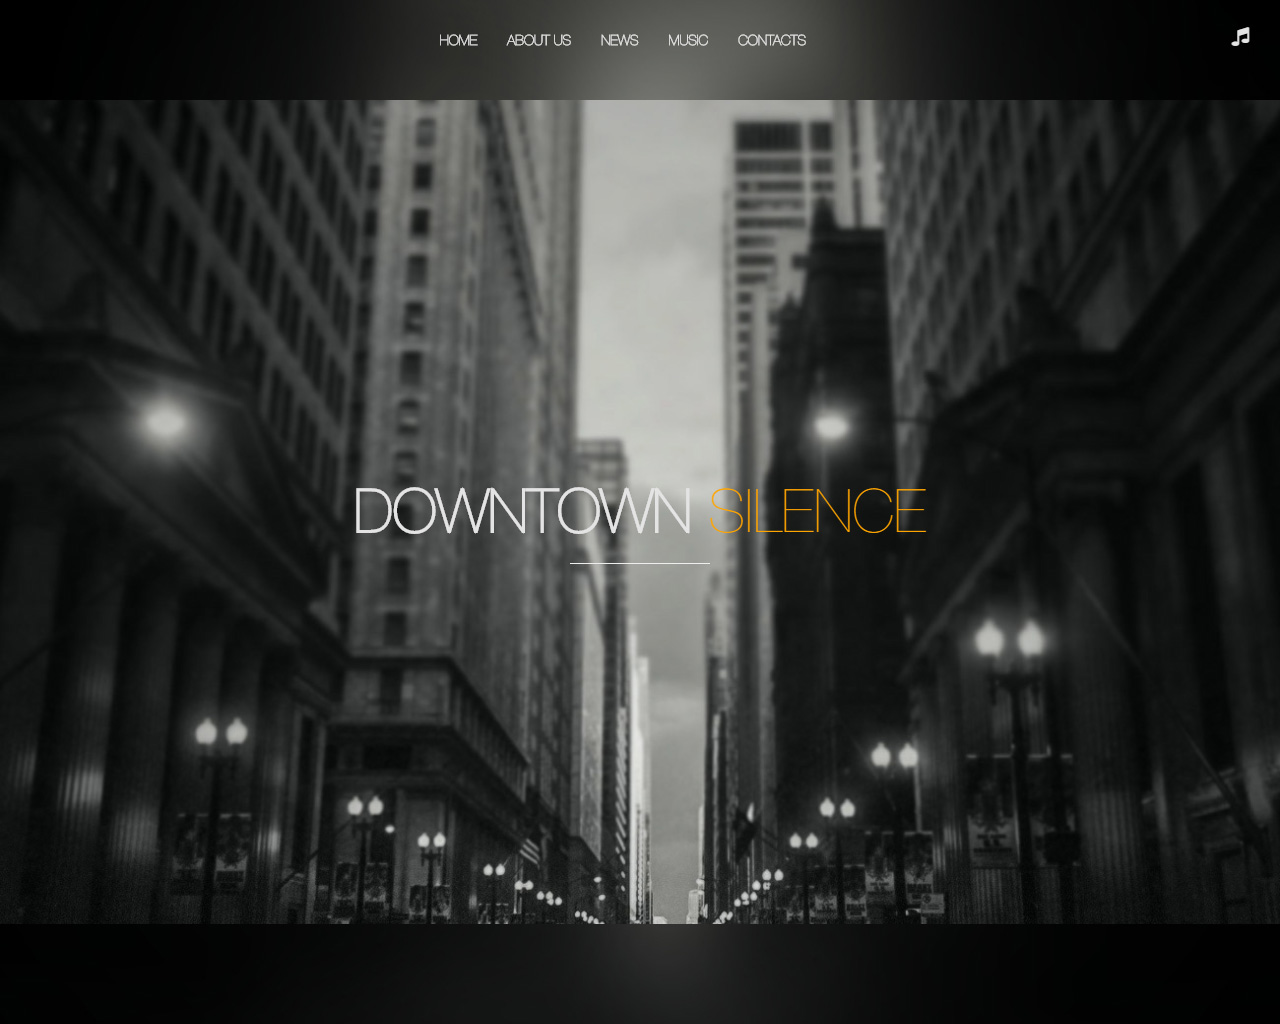 DowntownSilence